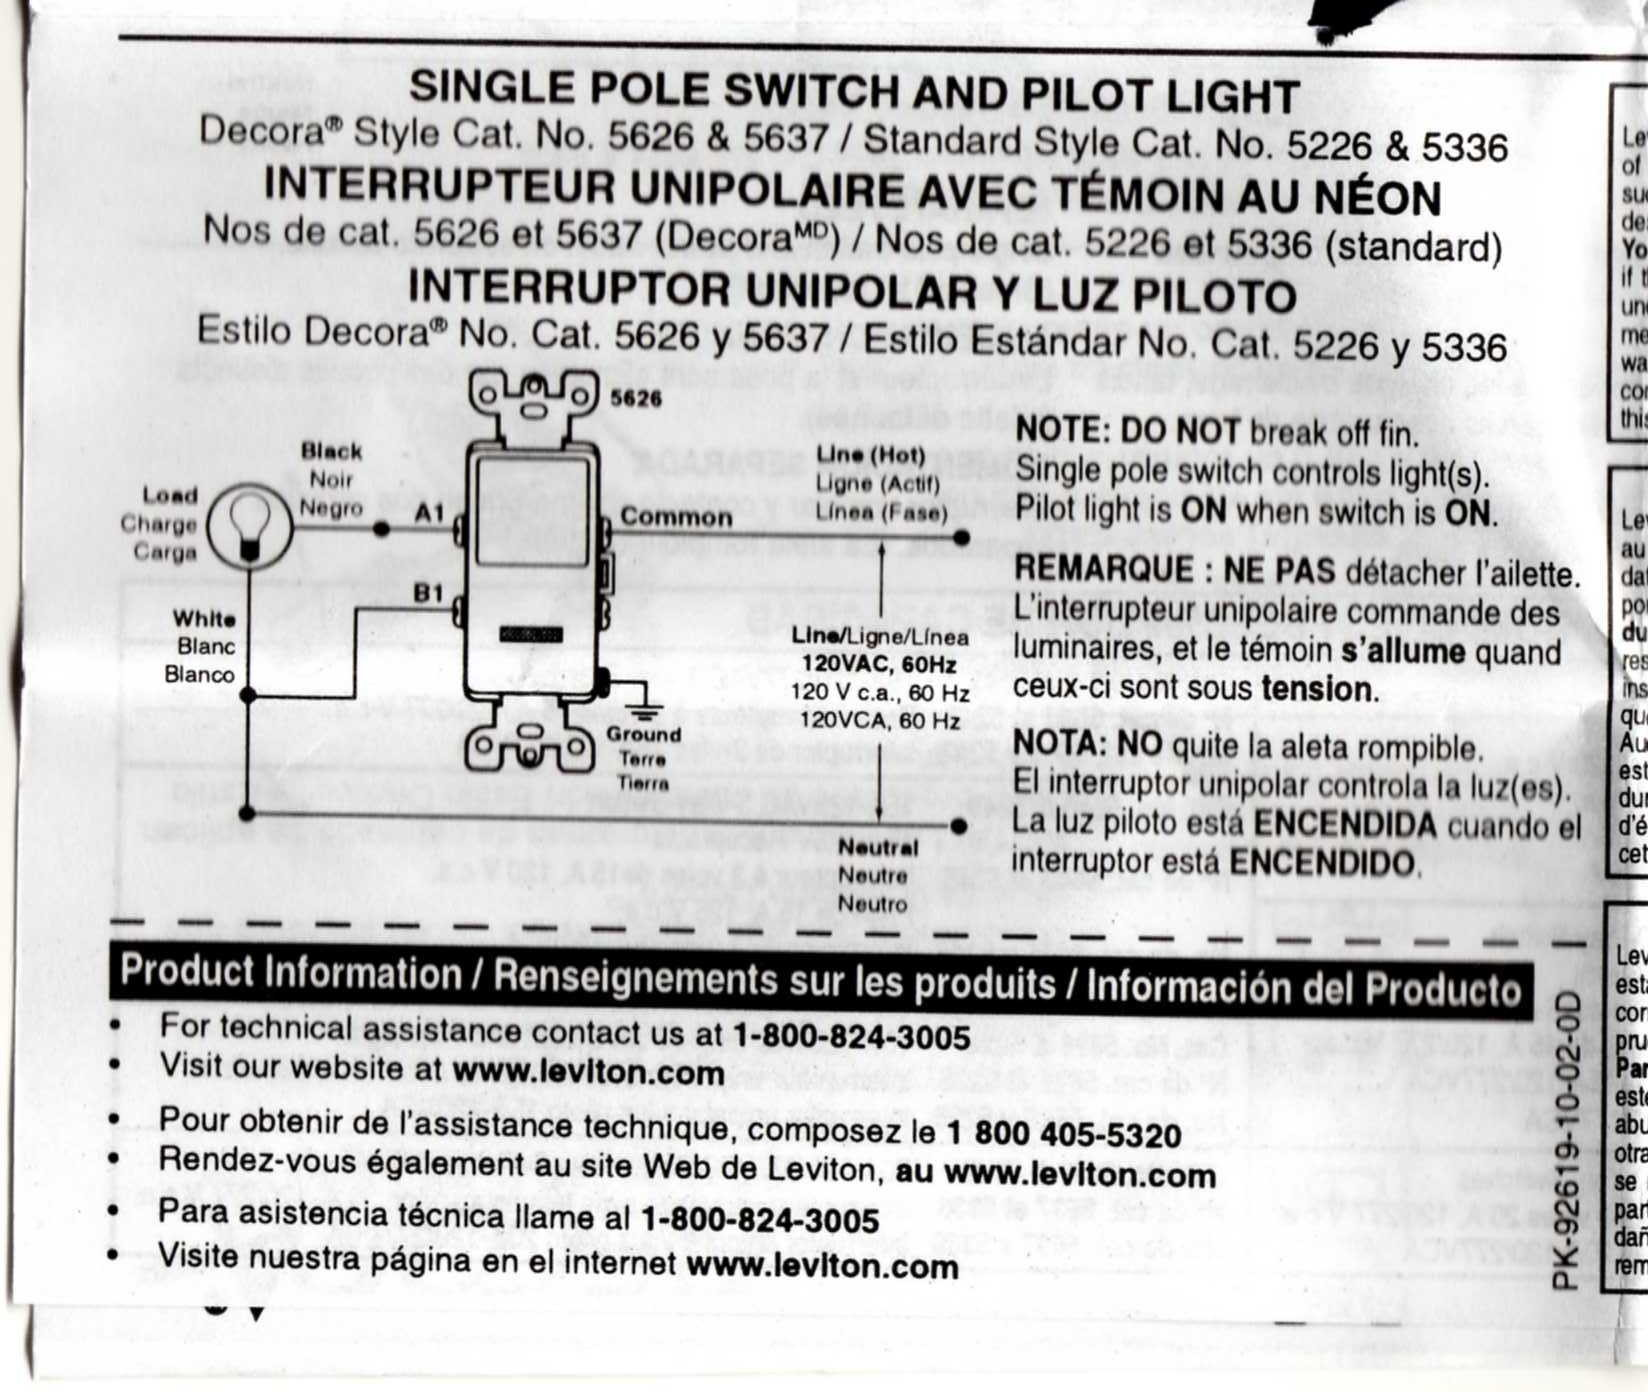 am trying to replace a single pole switch with a pilot light